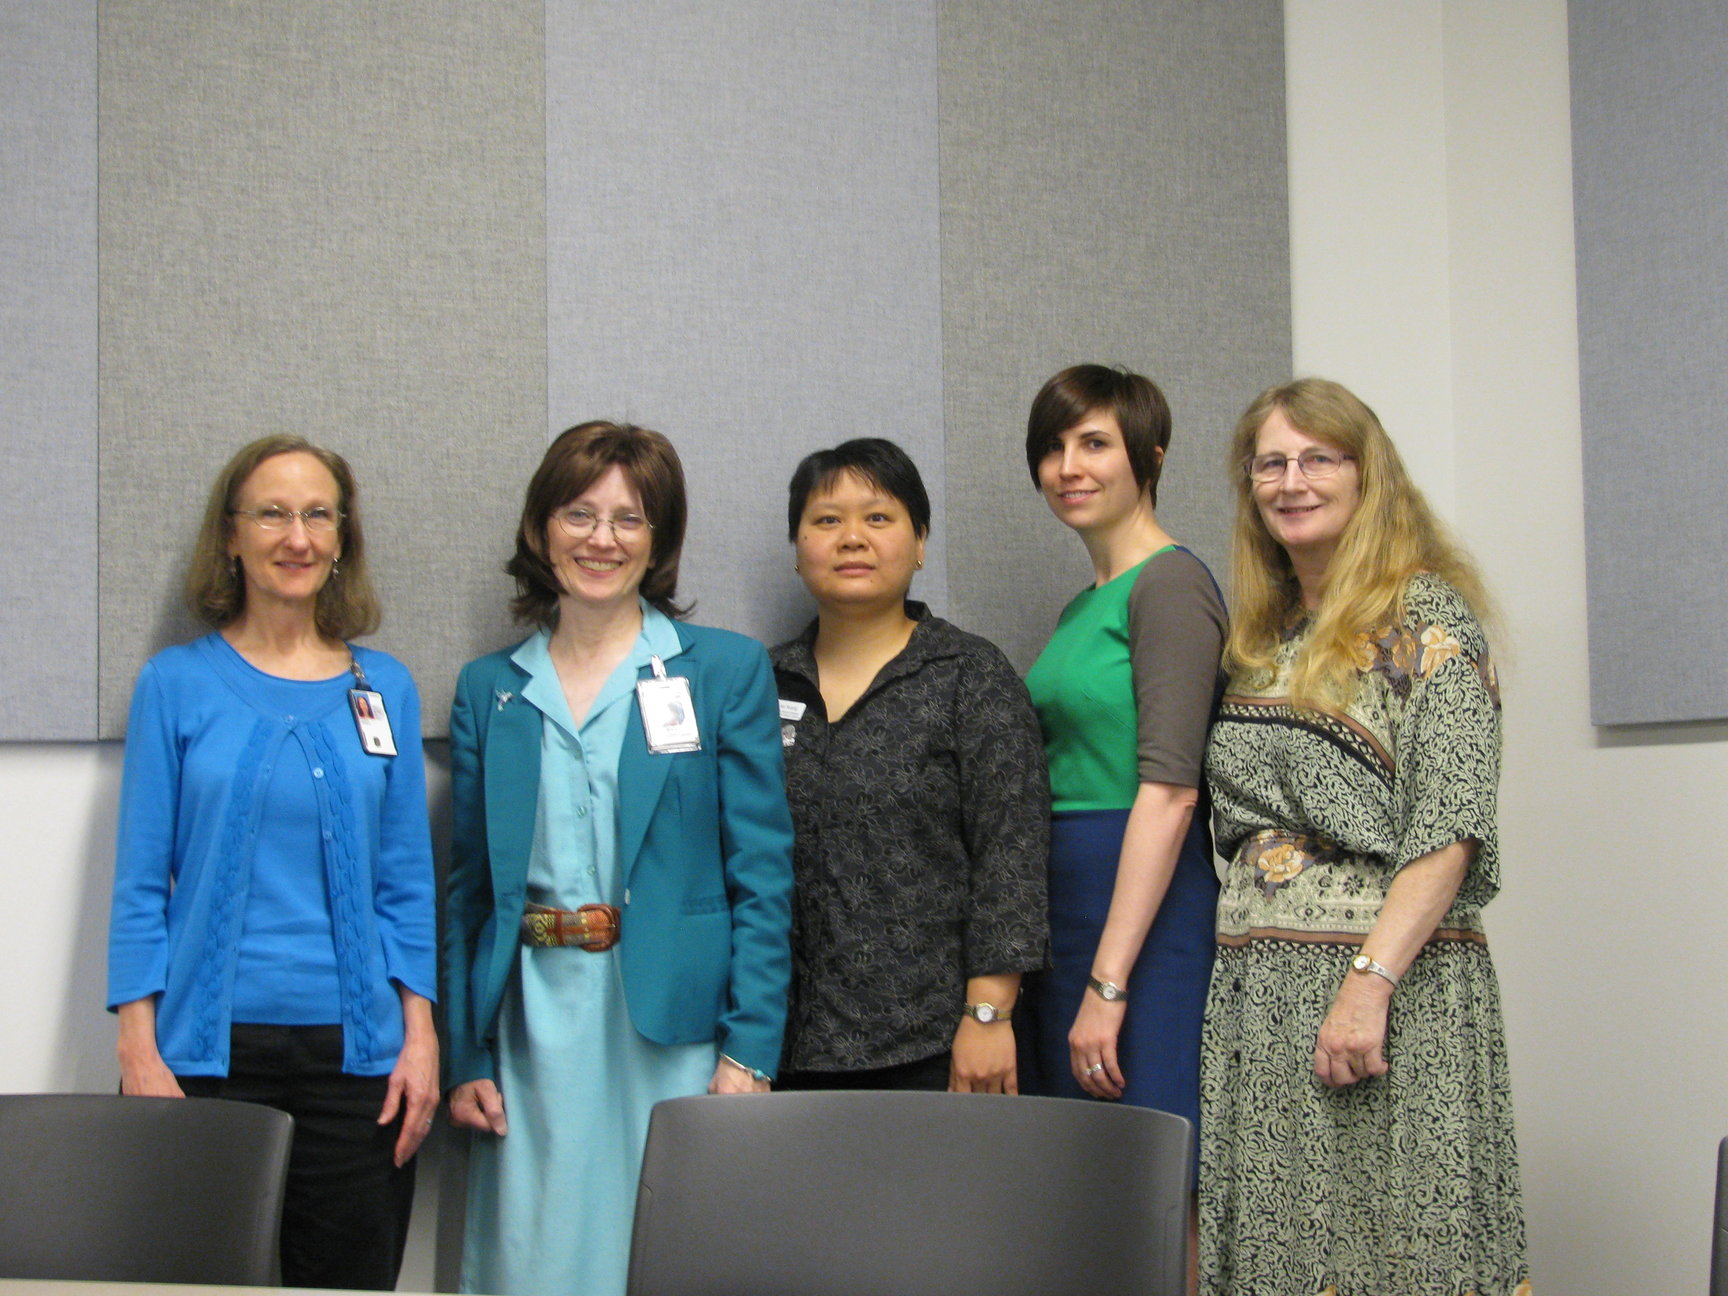 2013 Officers: Teresa Hansen, Treasurer; Mary Peters, Past President; Lisa Huang, President; Shelley Burns, President-Elect; Pat Reese, Secretary